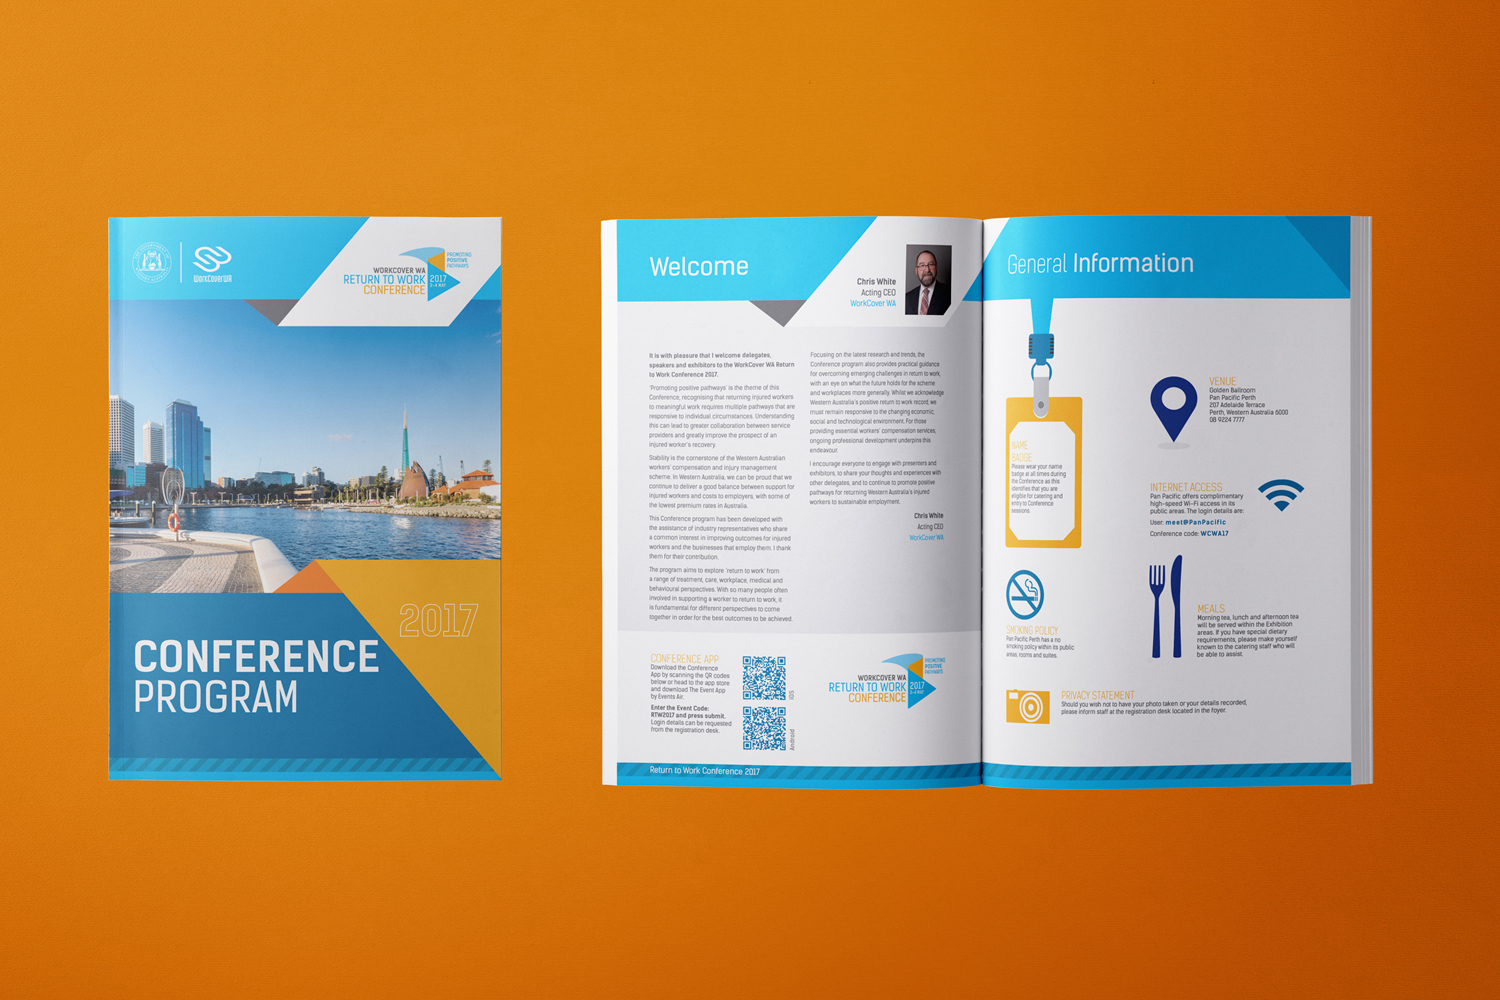 Work Cover WA 2017 conference branding